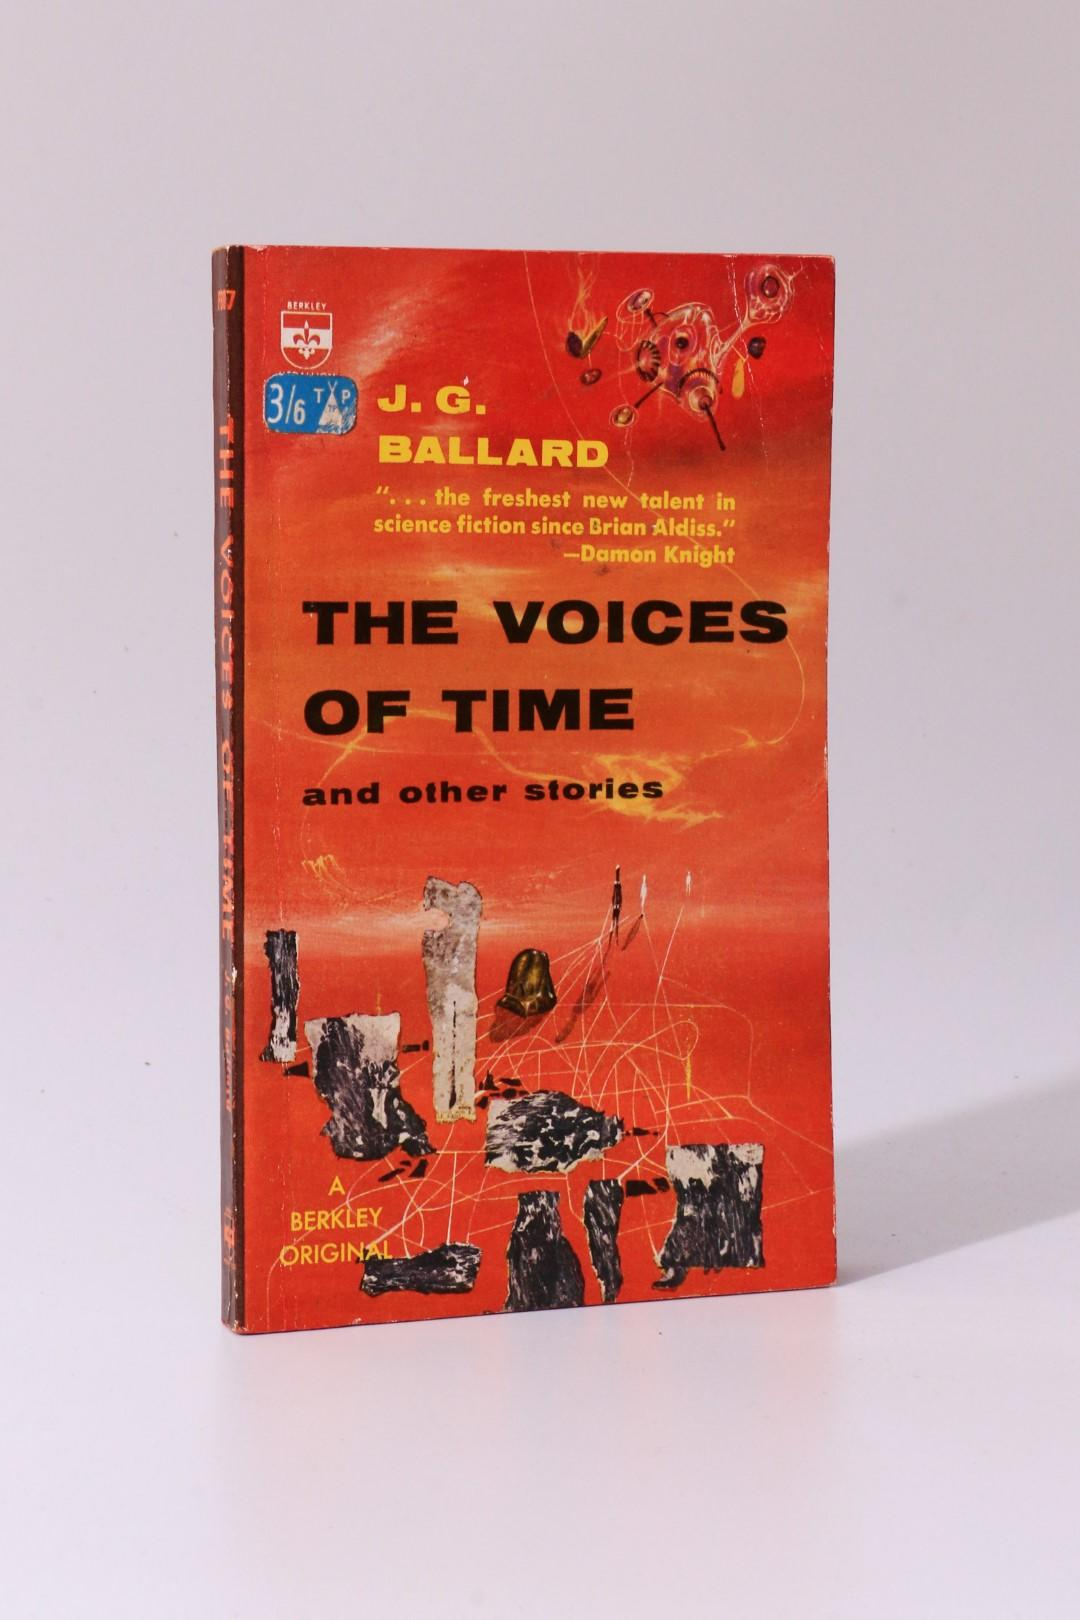 J.G. Ballard - The Voices of Time and Other Stories - Berkley, 1962, Signed First Edition.